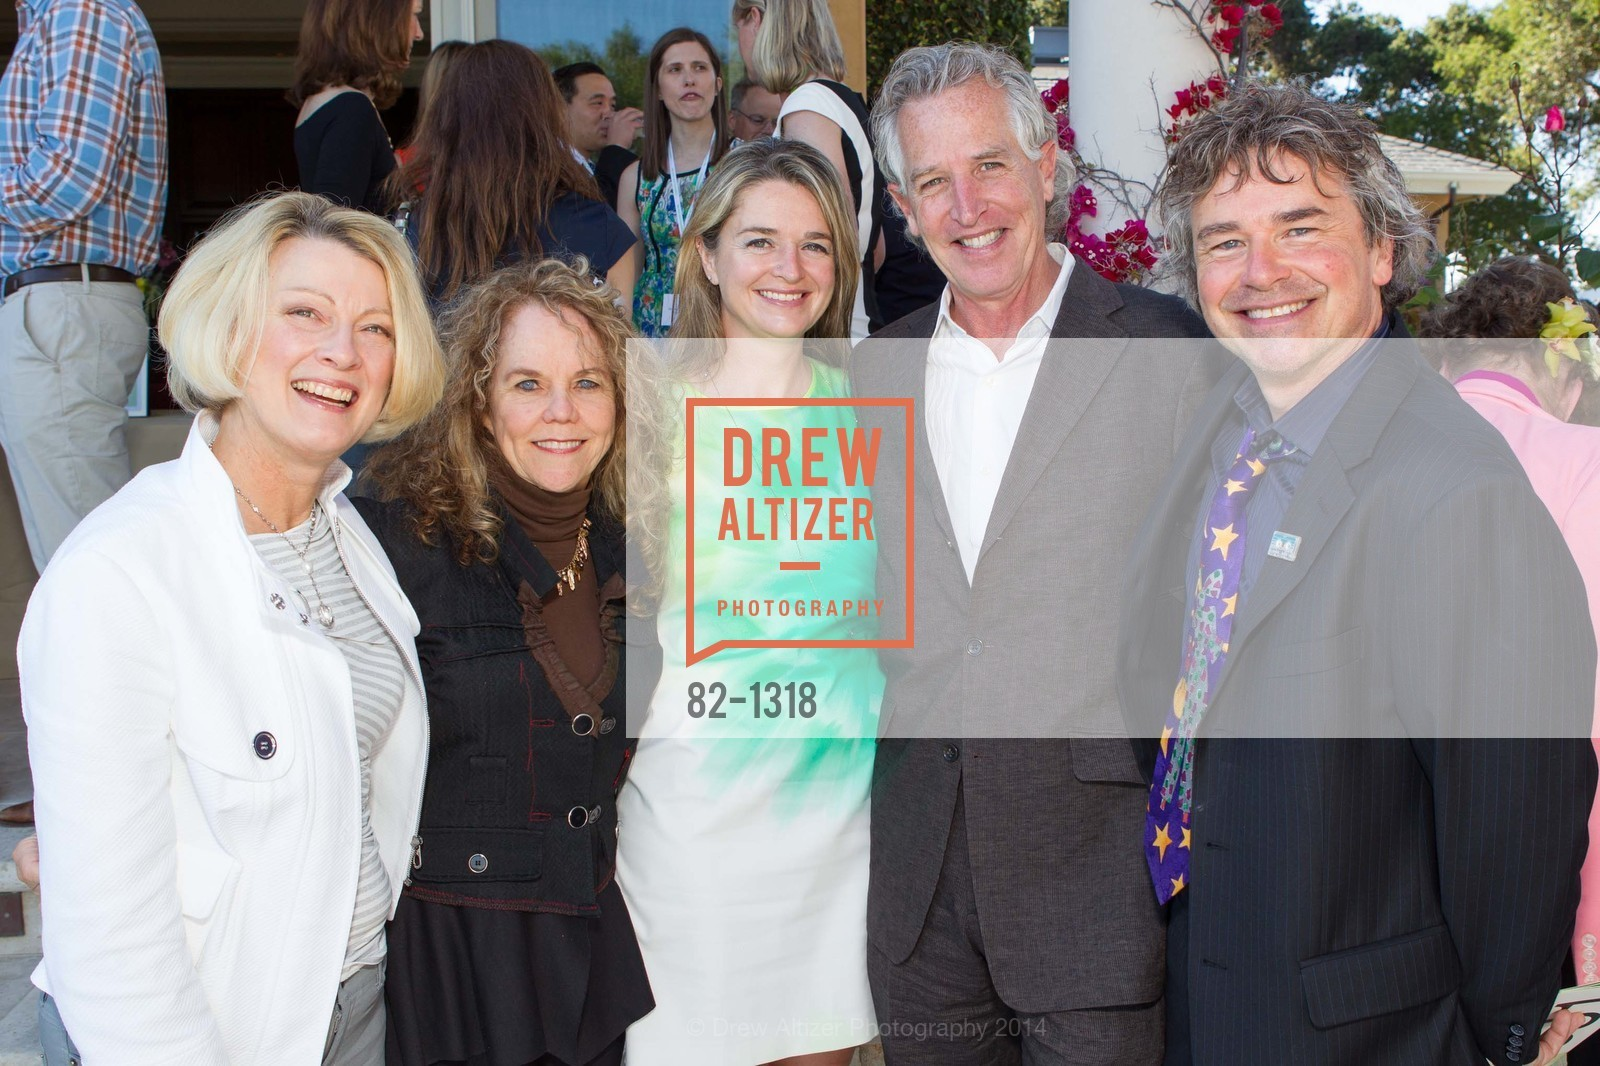 Ginny Sjoberg, JoAnn Loulan, Sinead Devine, Patrick Tinney, Ronny Crawford, Bay Area Lyme Foundation's LymeAid 2014, 884 Portola Road, Suite A7. Portola Valley, CA 94028, April 27th, 2014